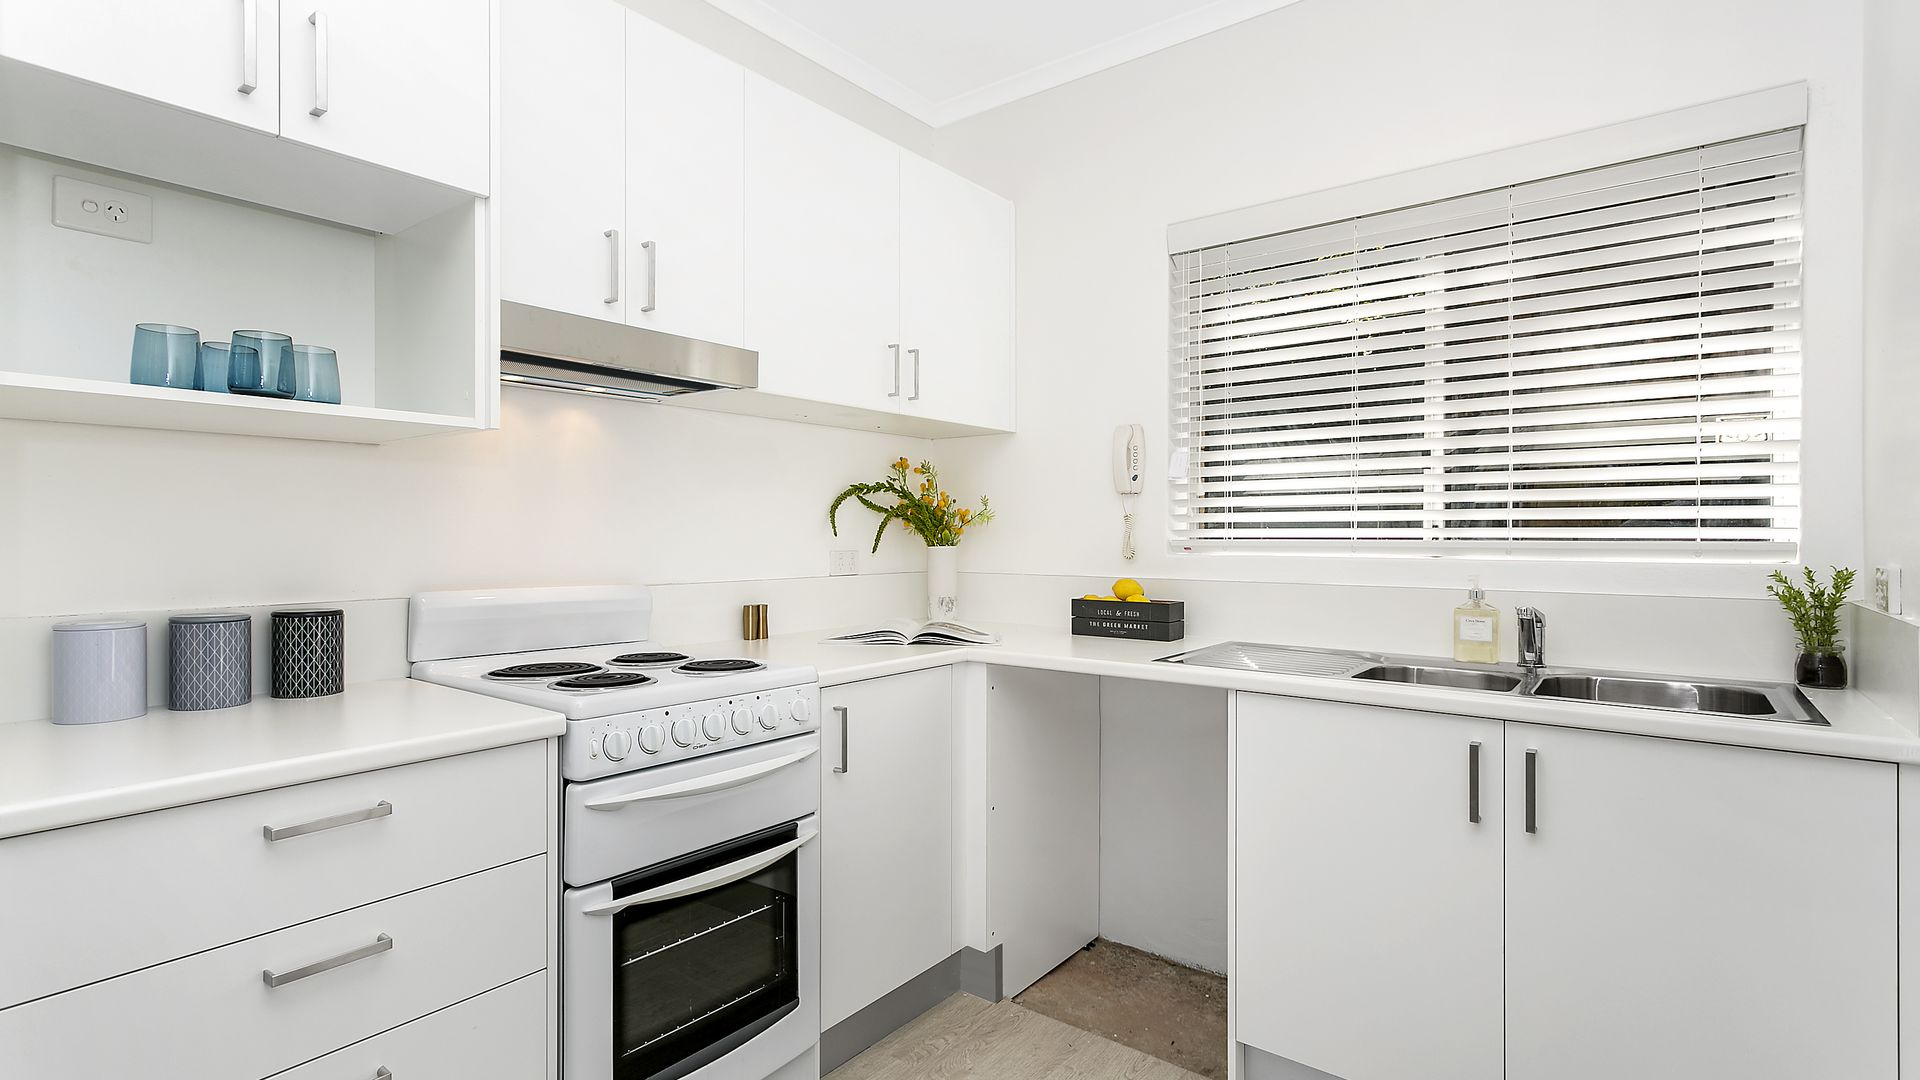 1/40 Burchmore Road, Manly Vale NSW 2093, Image 1